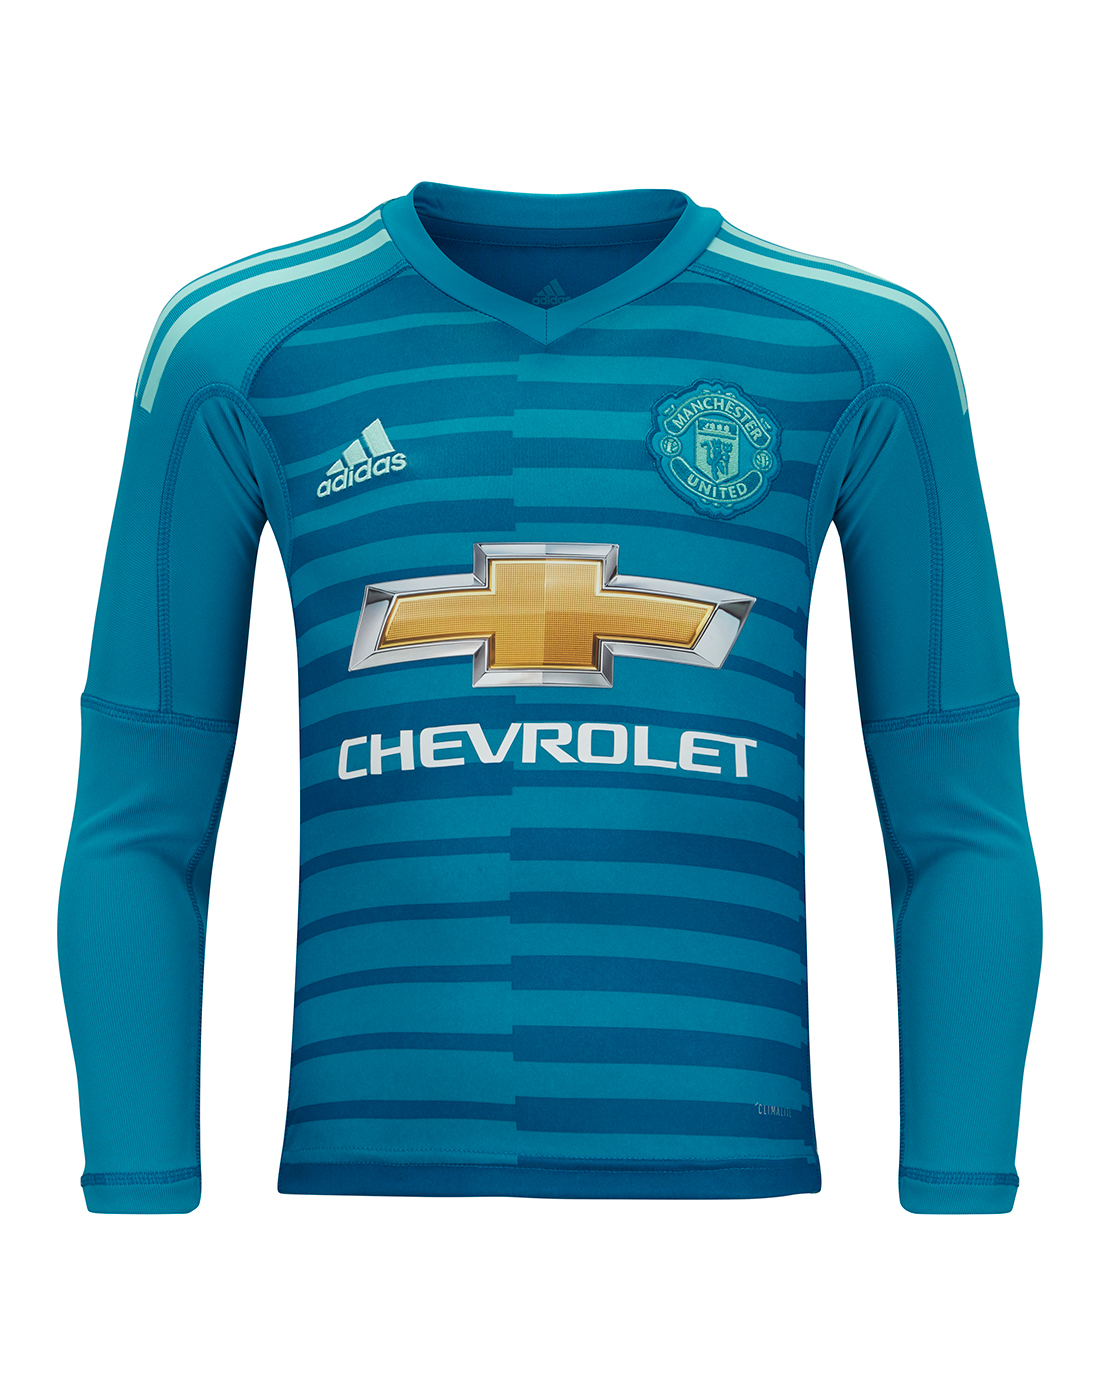 sale retailer 4eed7 c6522 Kids Man United 18/19 Goalkeeper Away Jersey | Life Style Sports